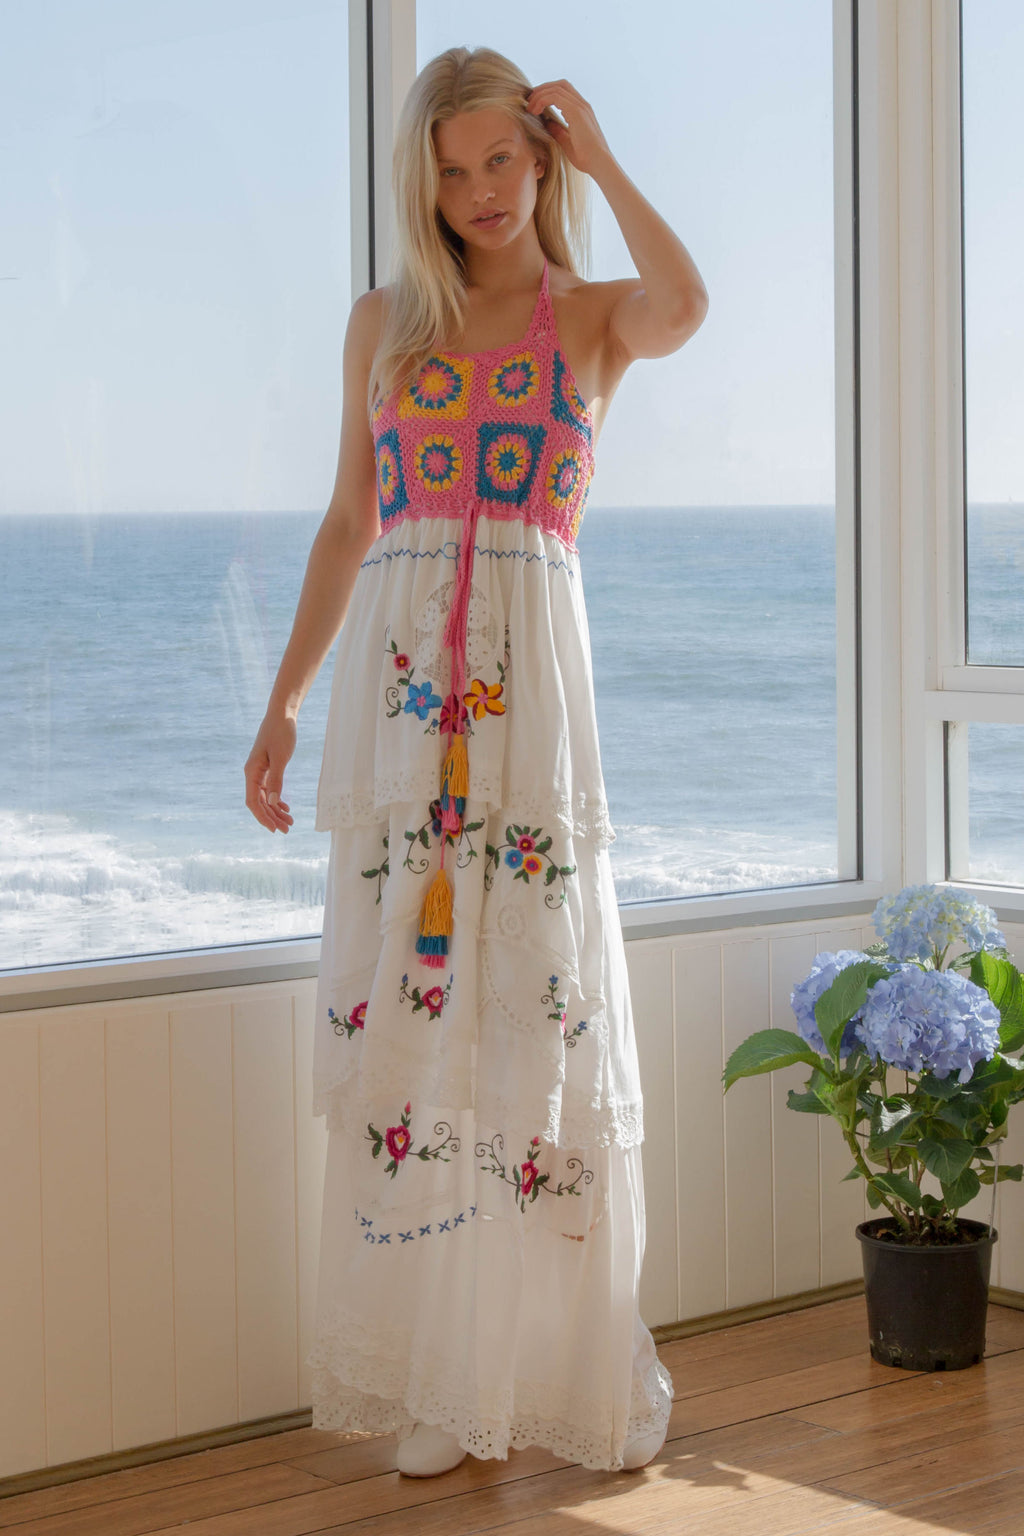 FILLYBOO - 'DOLL HOUSE' - KISS CHASEY EMBROIDERED & CROCHETED MAXI DRESS